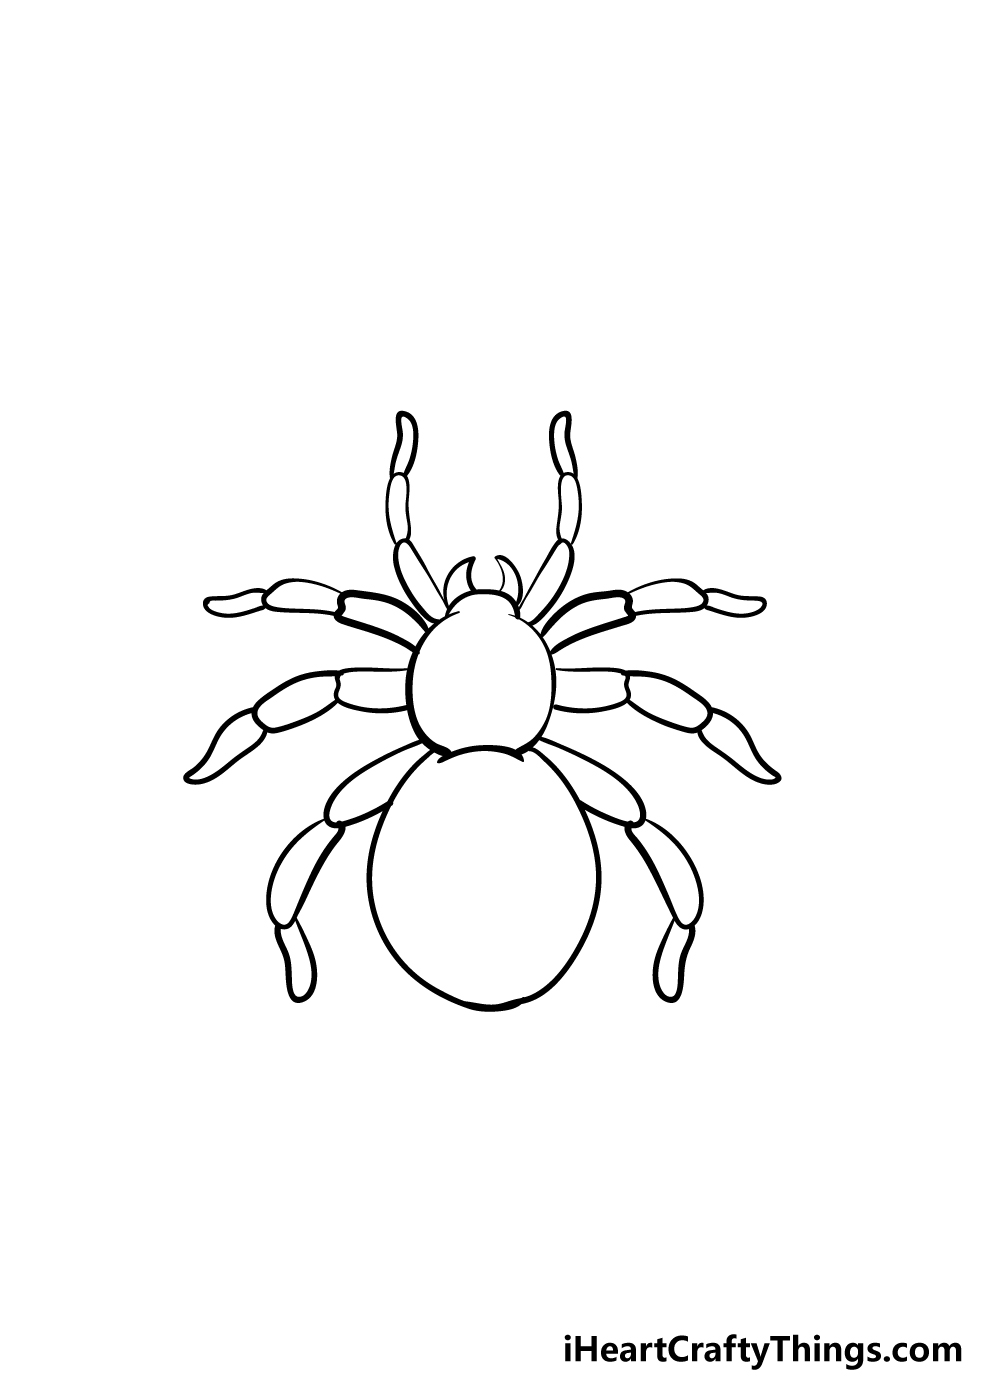 spider drawing step 6